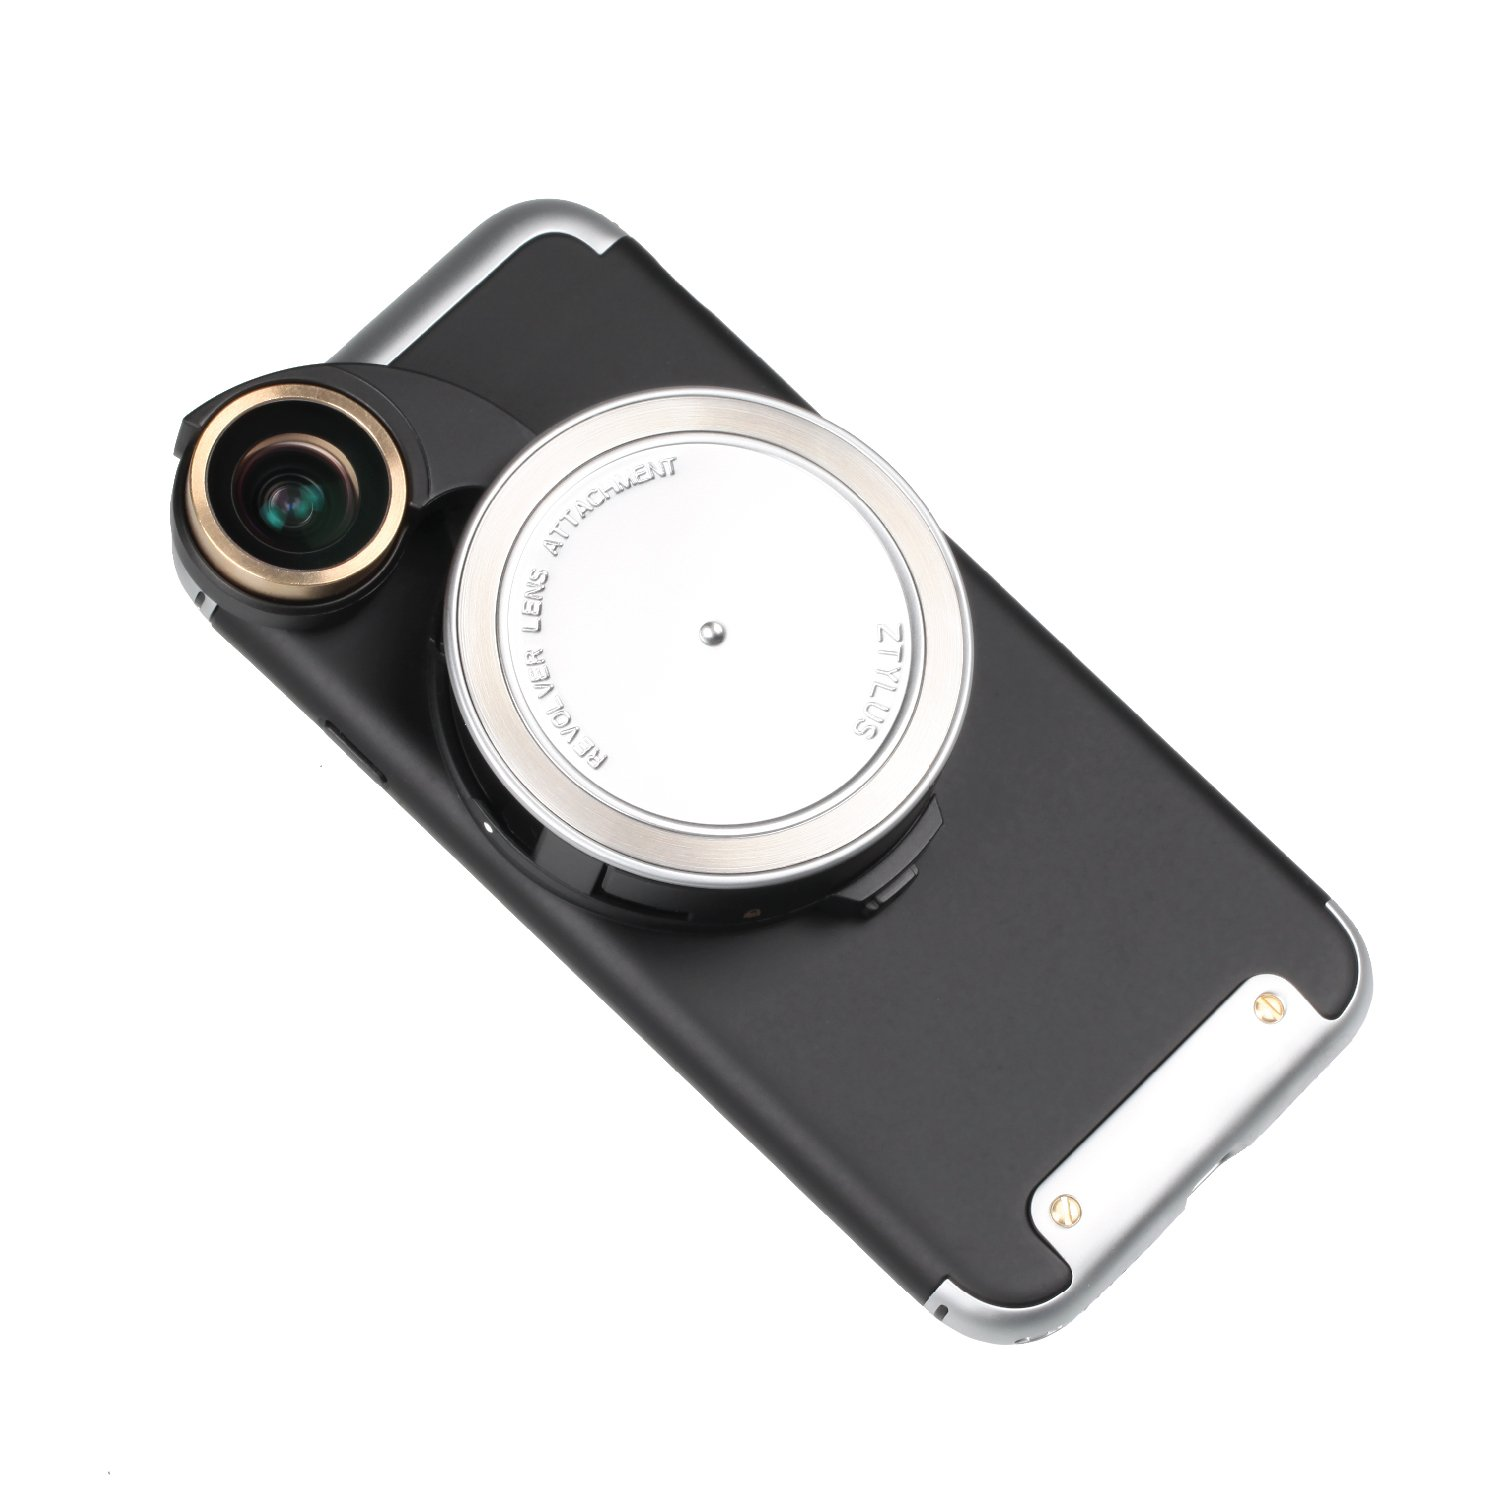 Ztylus 4-in-1 Revolver Lens Smartphone Camera Kit for Apple iPhone 7: Super Wide Angle, Macro, Fisheye, CPL, Protective Case, Phone Camera, Photo Video (Silver) by Ztylus